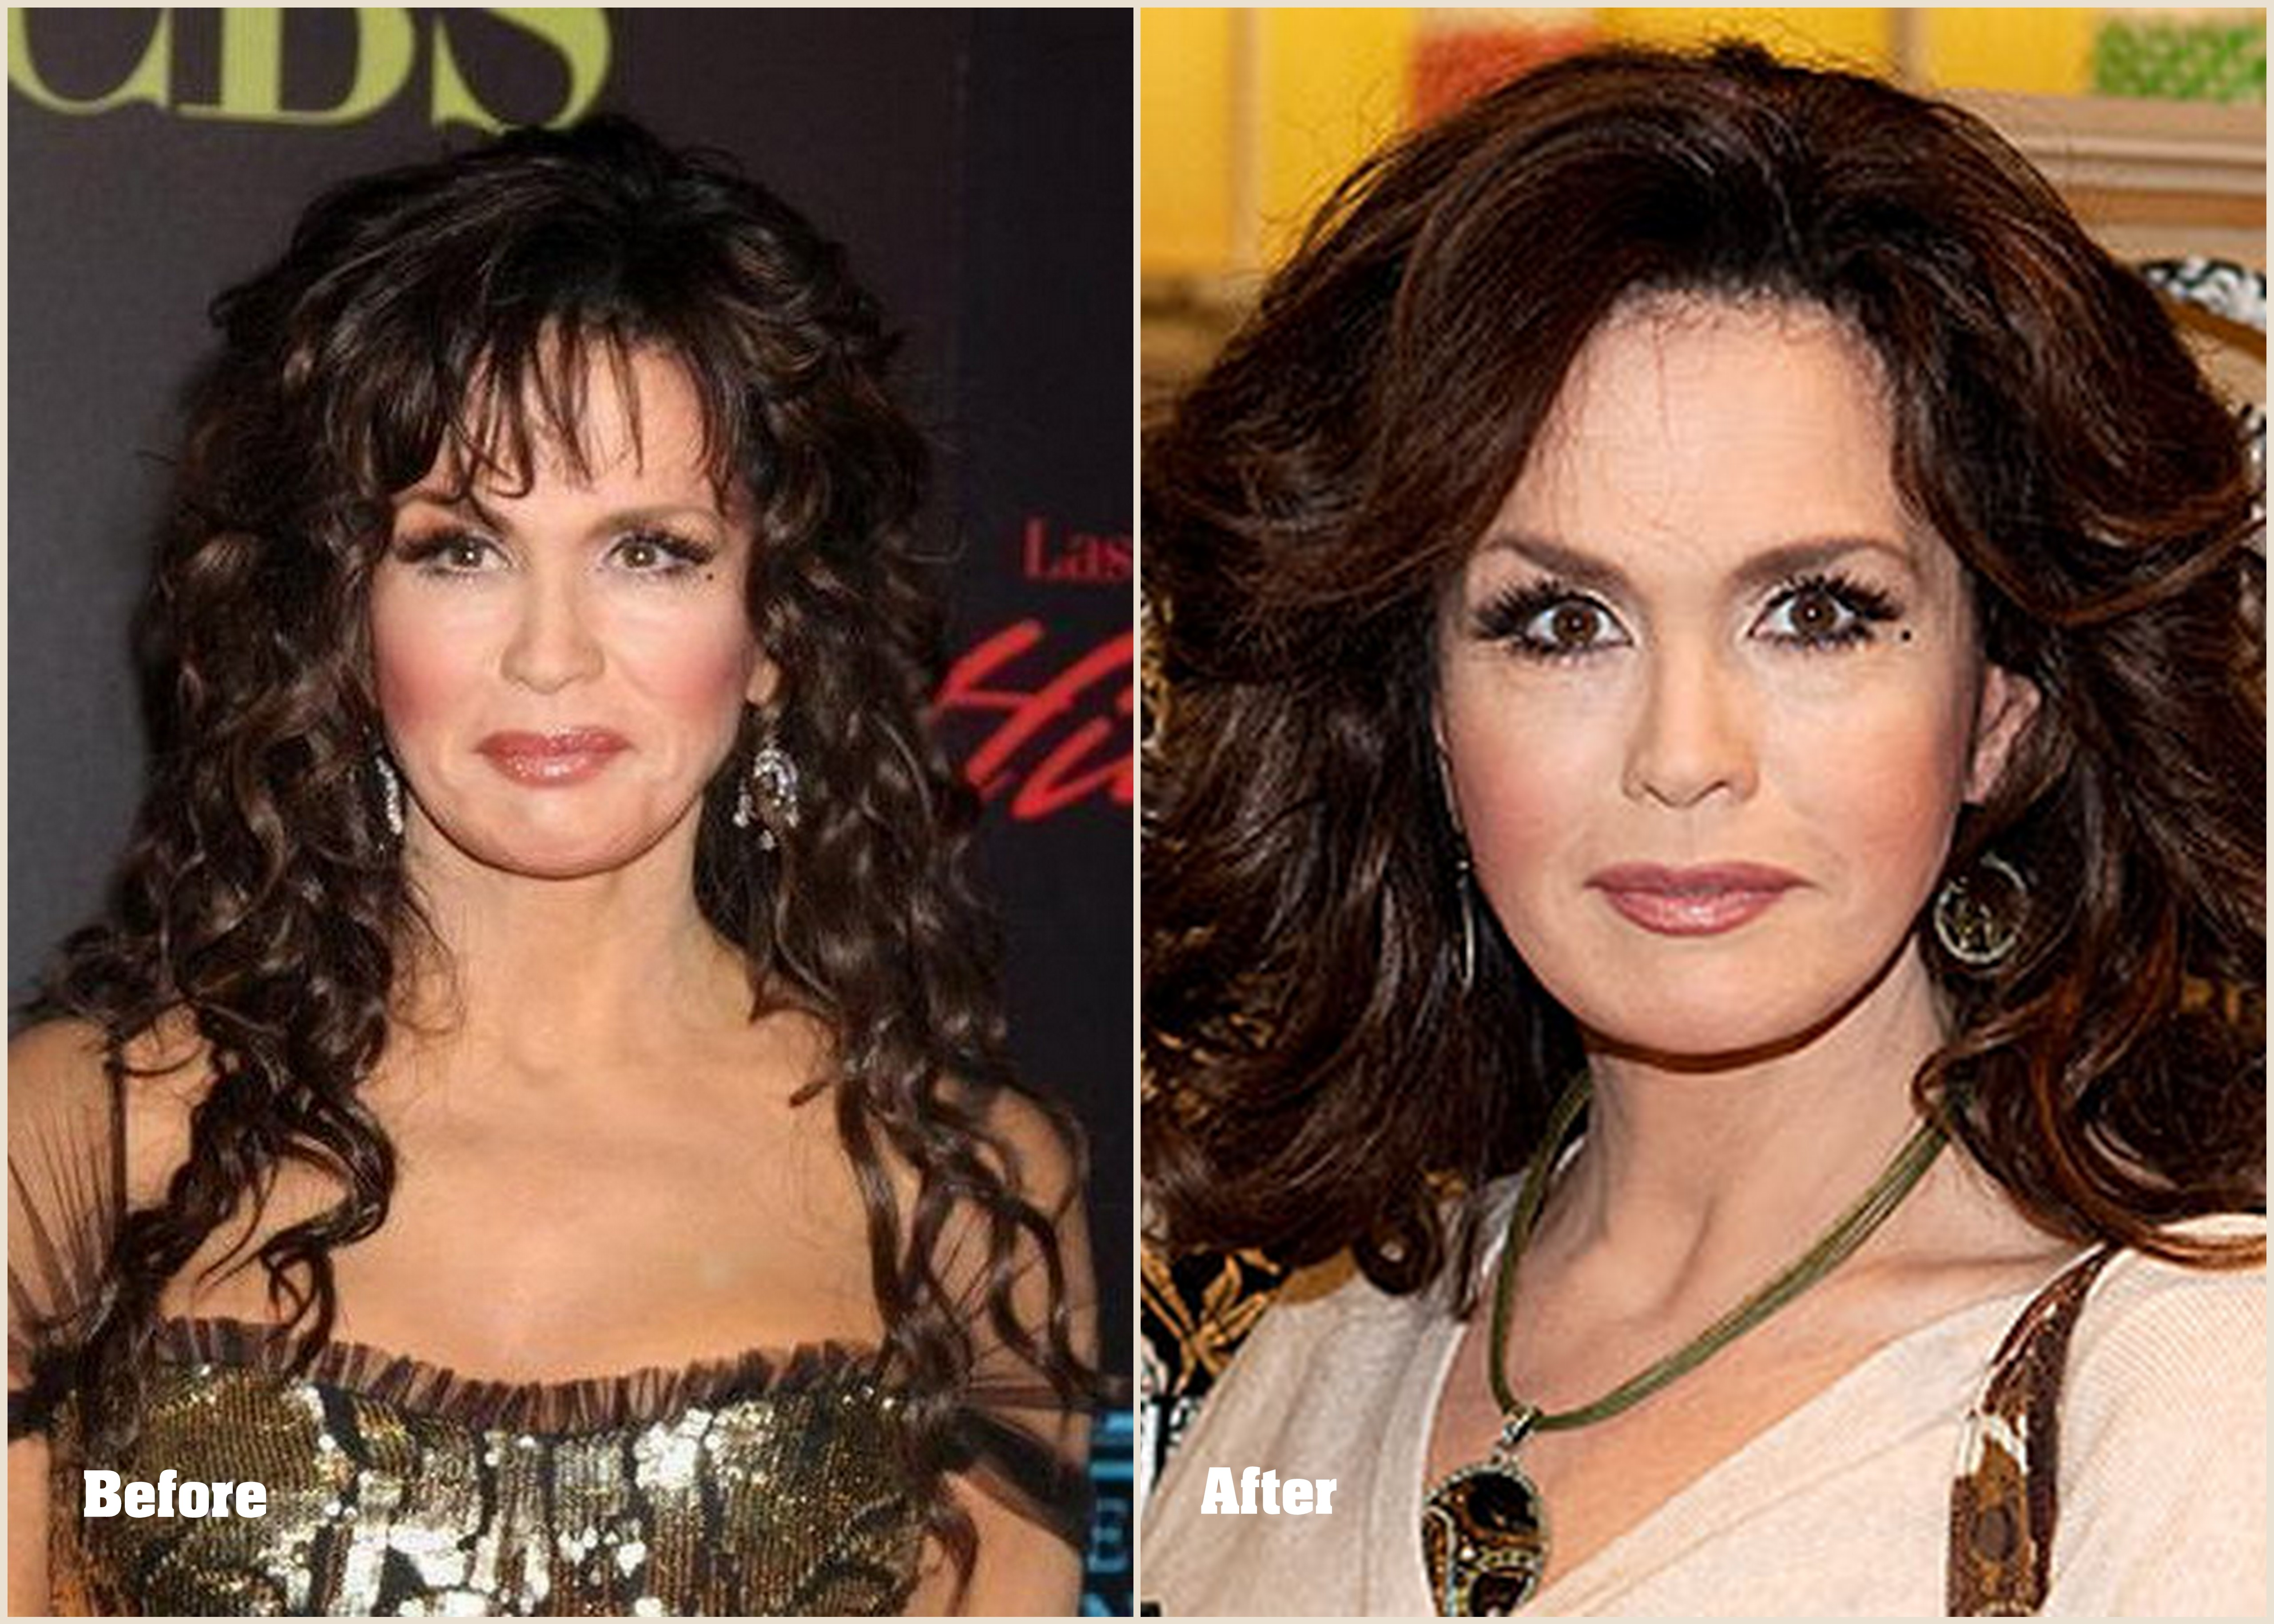 Marie Osmond Plastic Surgery Before And After Photo 2013 2014